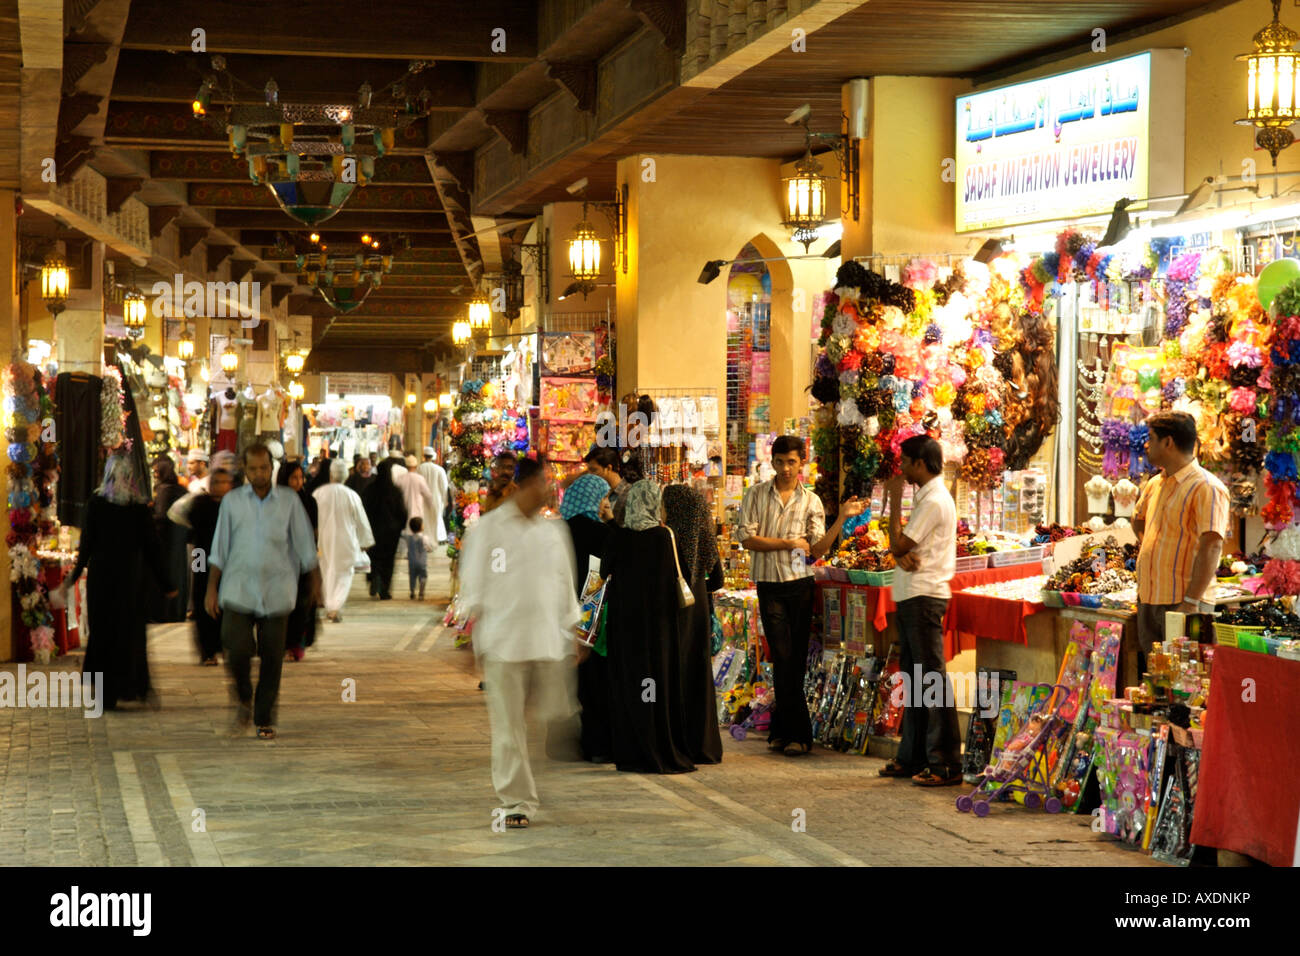 Interior of the Mutrah souk in Muscat, the capital of the Sultanate of Oman. - Stock Image